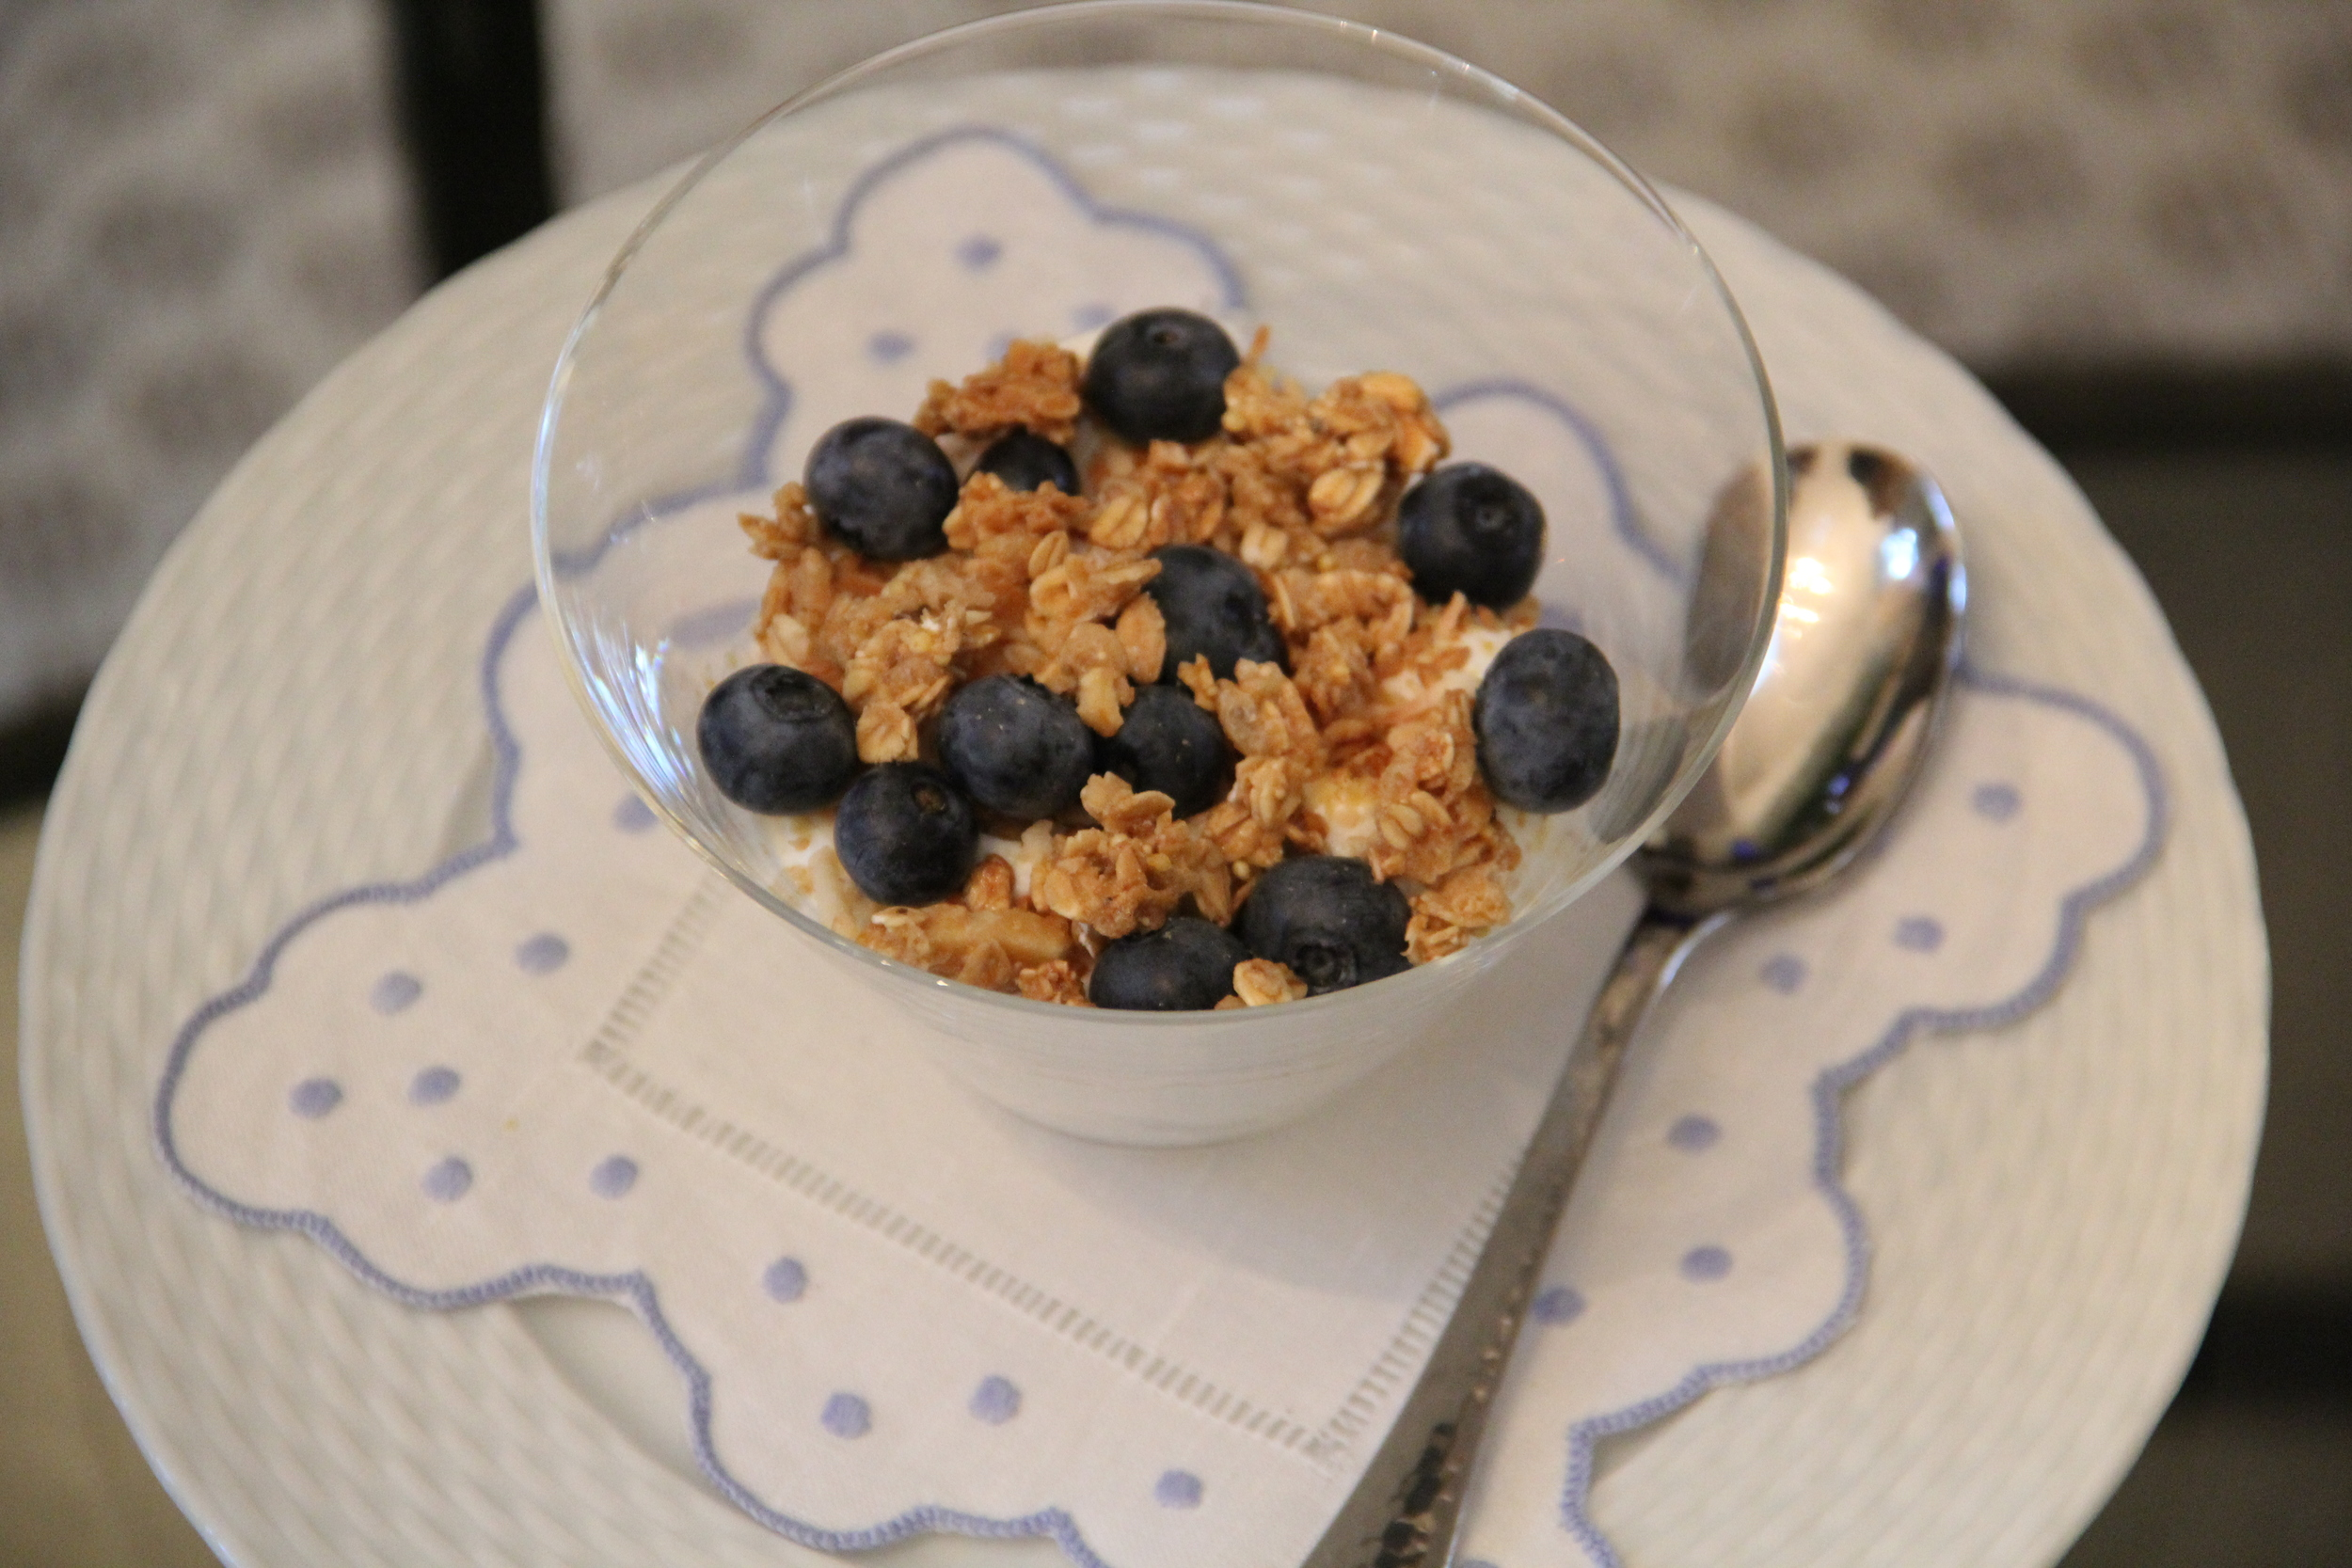 Greek Yogurt Parfait 1.JPG